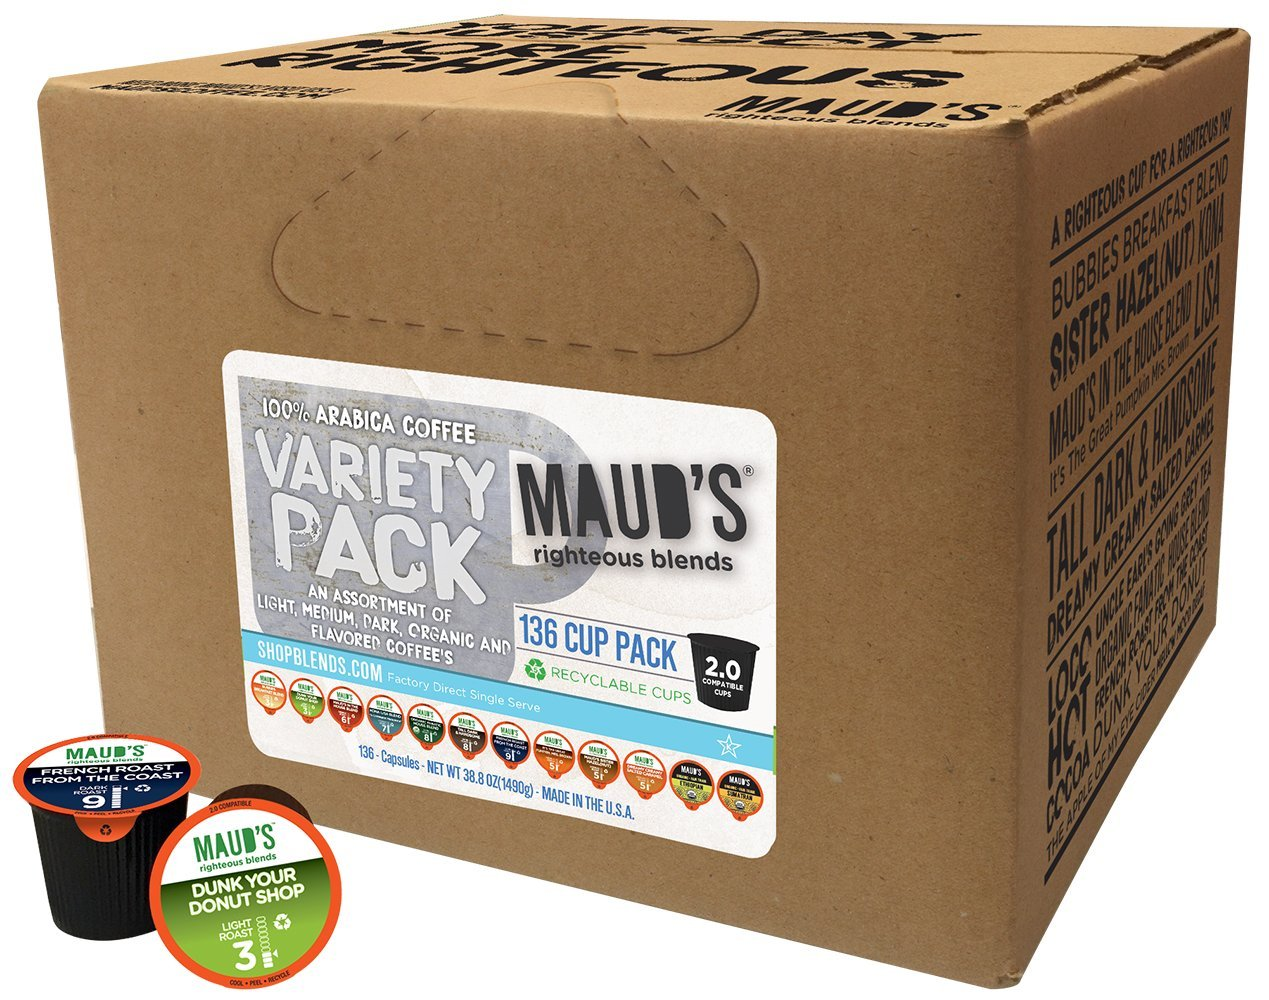 Maud's Gourmet Coffee Pods - 12 Flavor Variety Pack, 136-Count Single Serve Coffee Pods - Richly Satisfying Premium Arabica Beans, California-Roasted - Kcup Compatible, Including 2.0 by Maud's Coffee